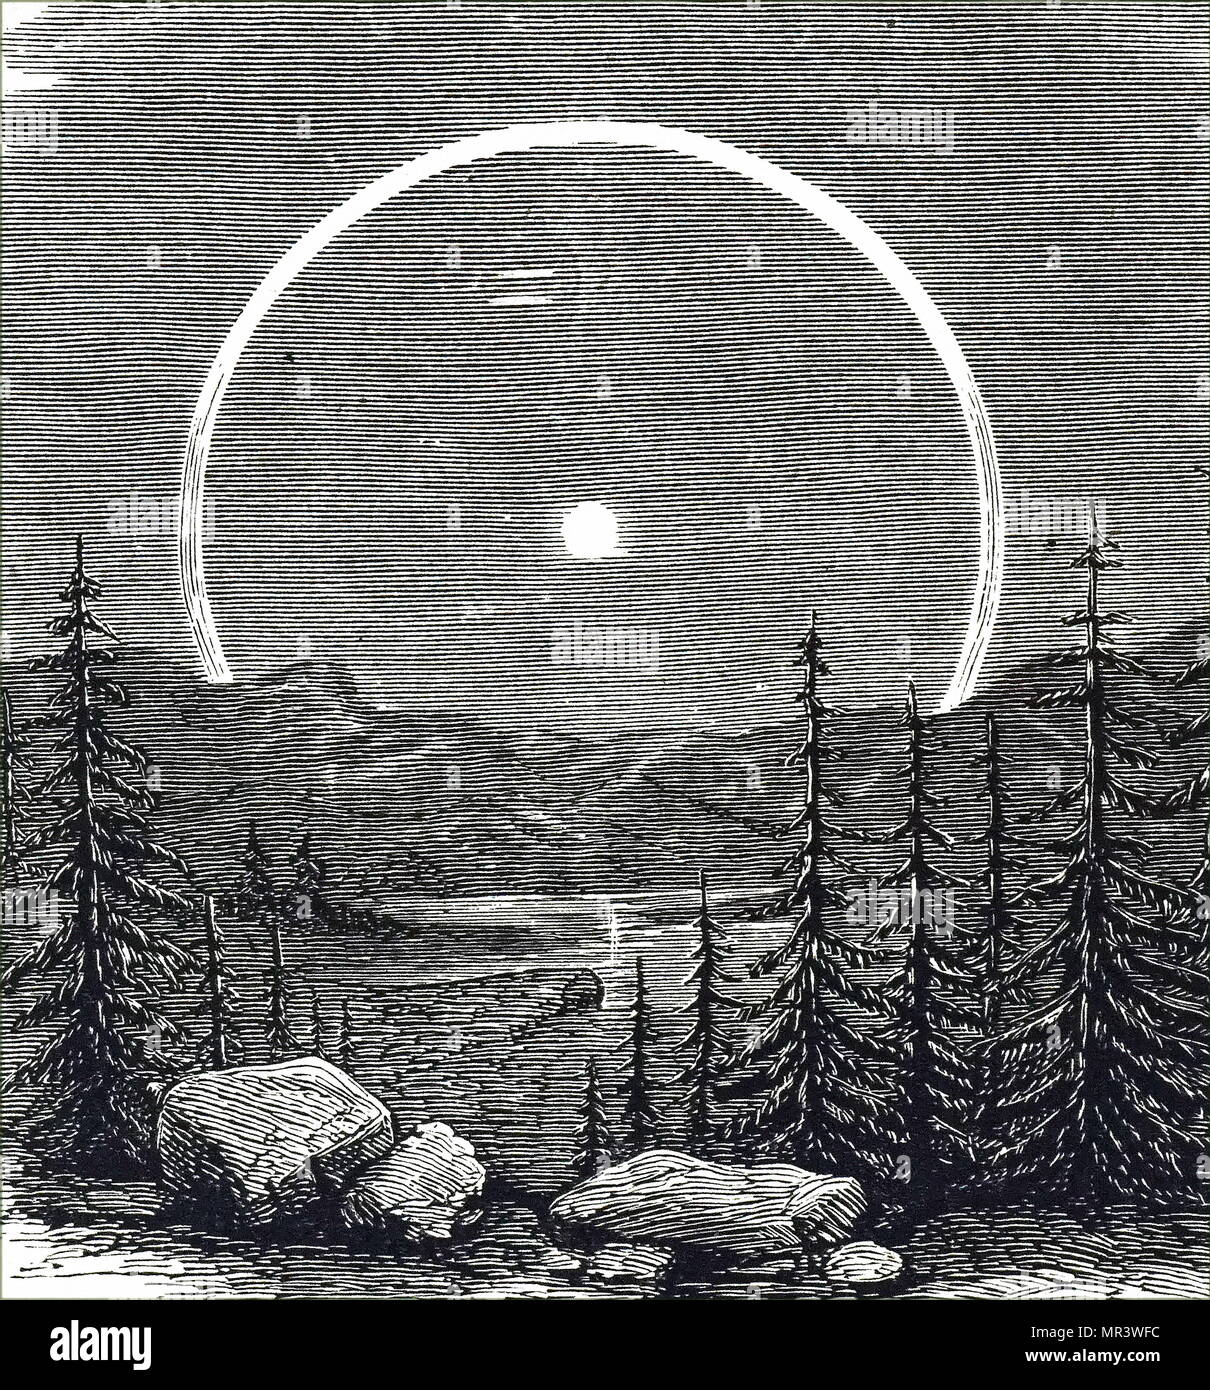 Illustration depicting a lunar halo or 'glory'. Like similar phenomena observed round the sun, such haloes are caused by the reflection from water droplets or minute ice particles in the earth's atmosphere. Dated 18th century - Stock Image